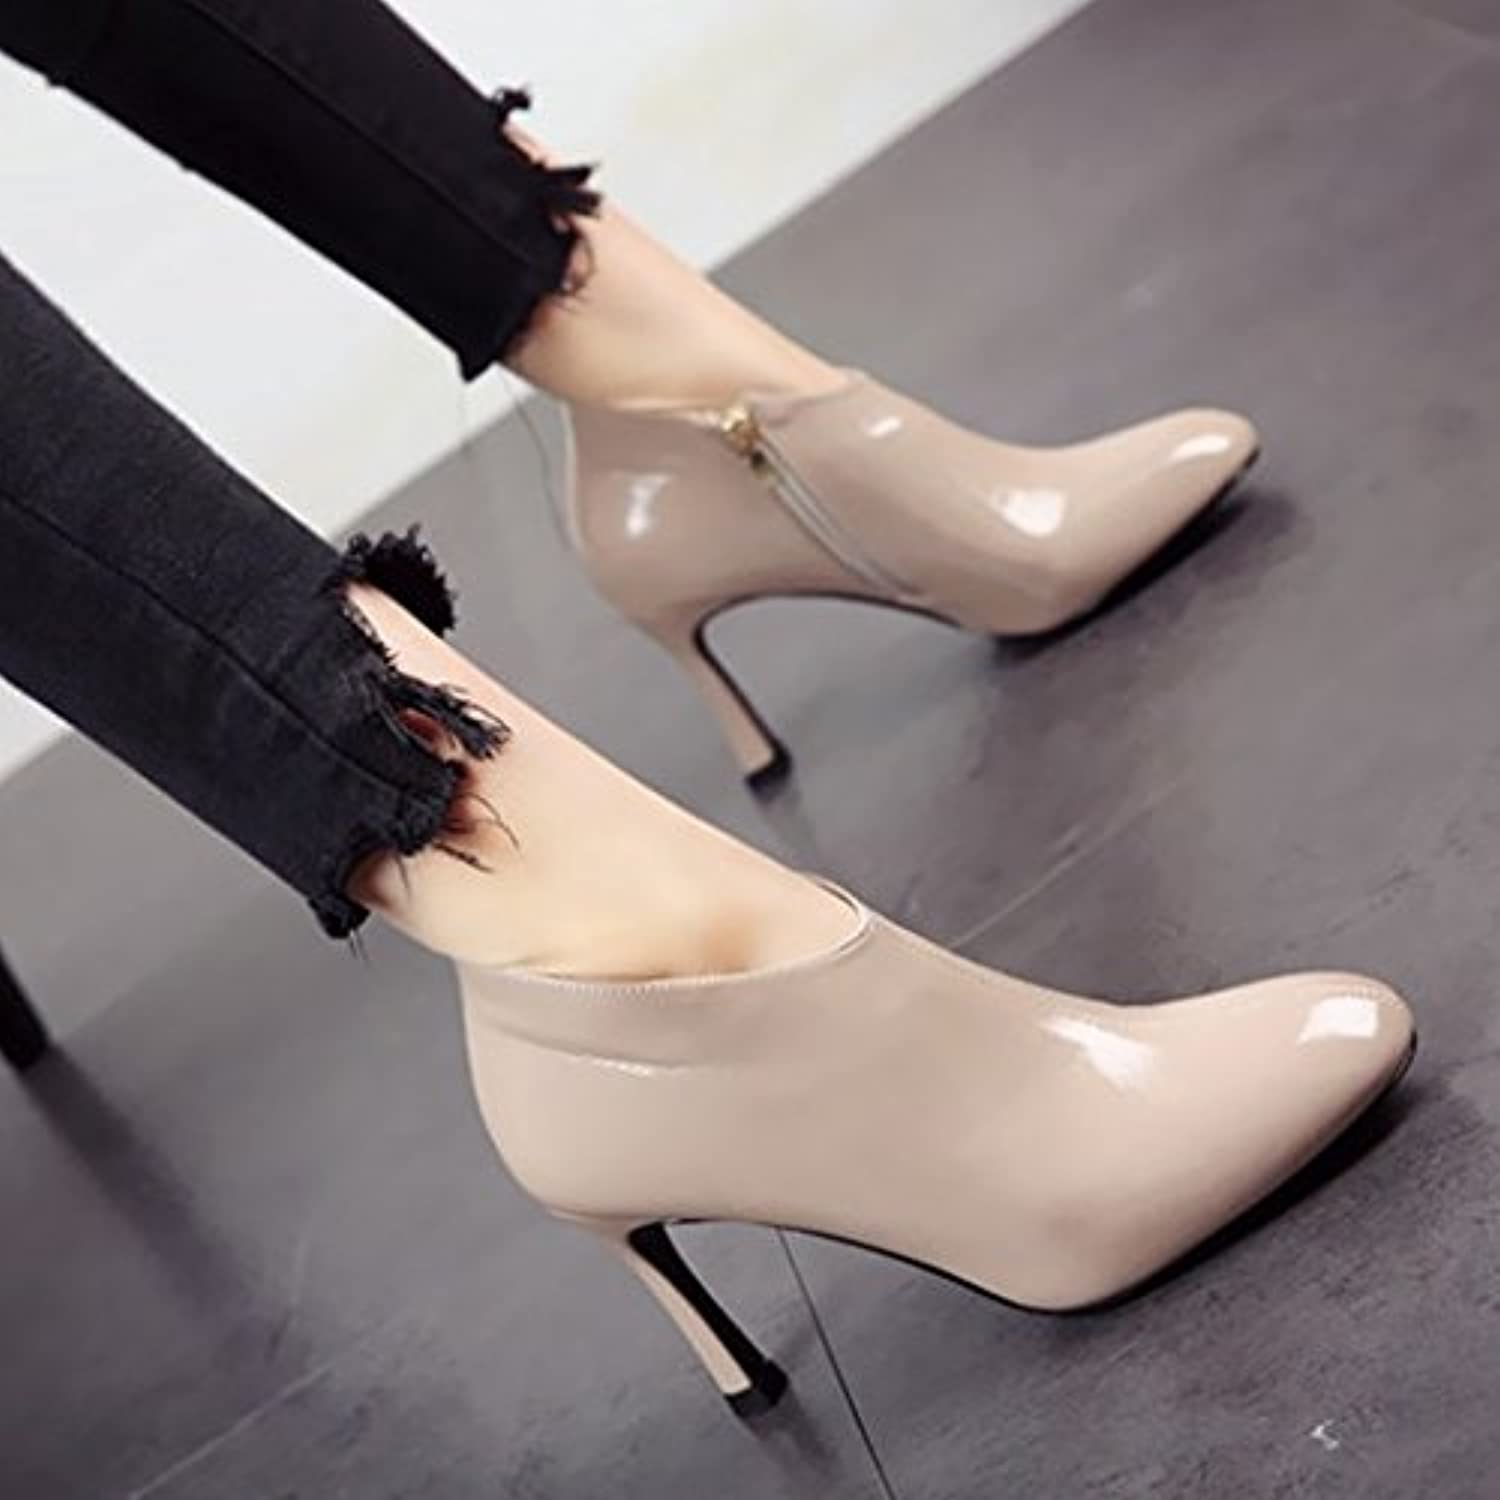 e6758f82e35c FLYRCX Ladies  retro simple and and and elegant fashion and elegant single  shoe high heel party shoes B07BKW8XCK Parent 348c9c